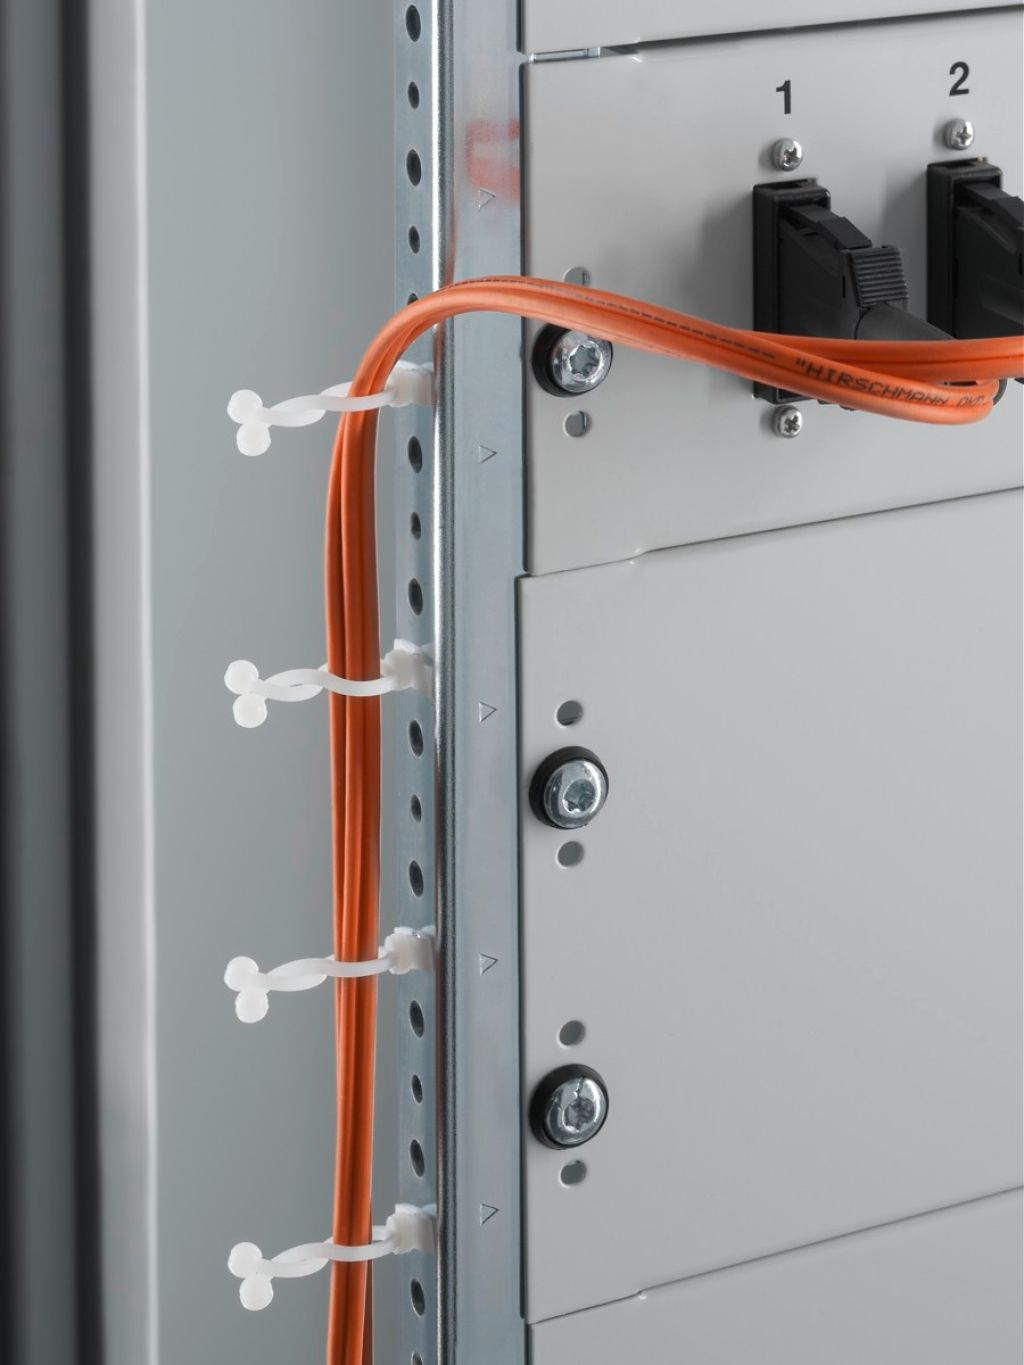 Snap-in cable routing for clipping into the system punchings.